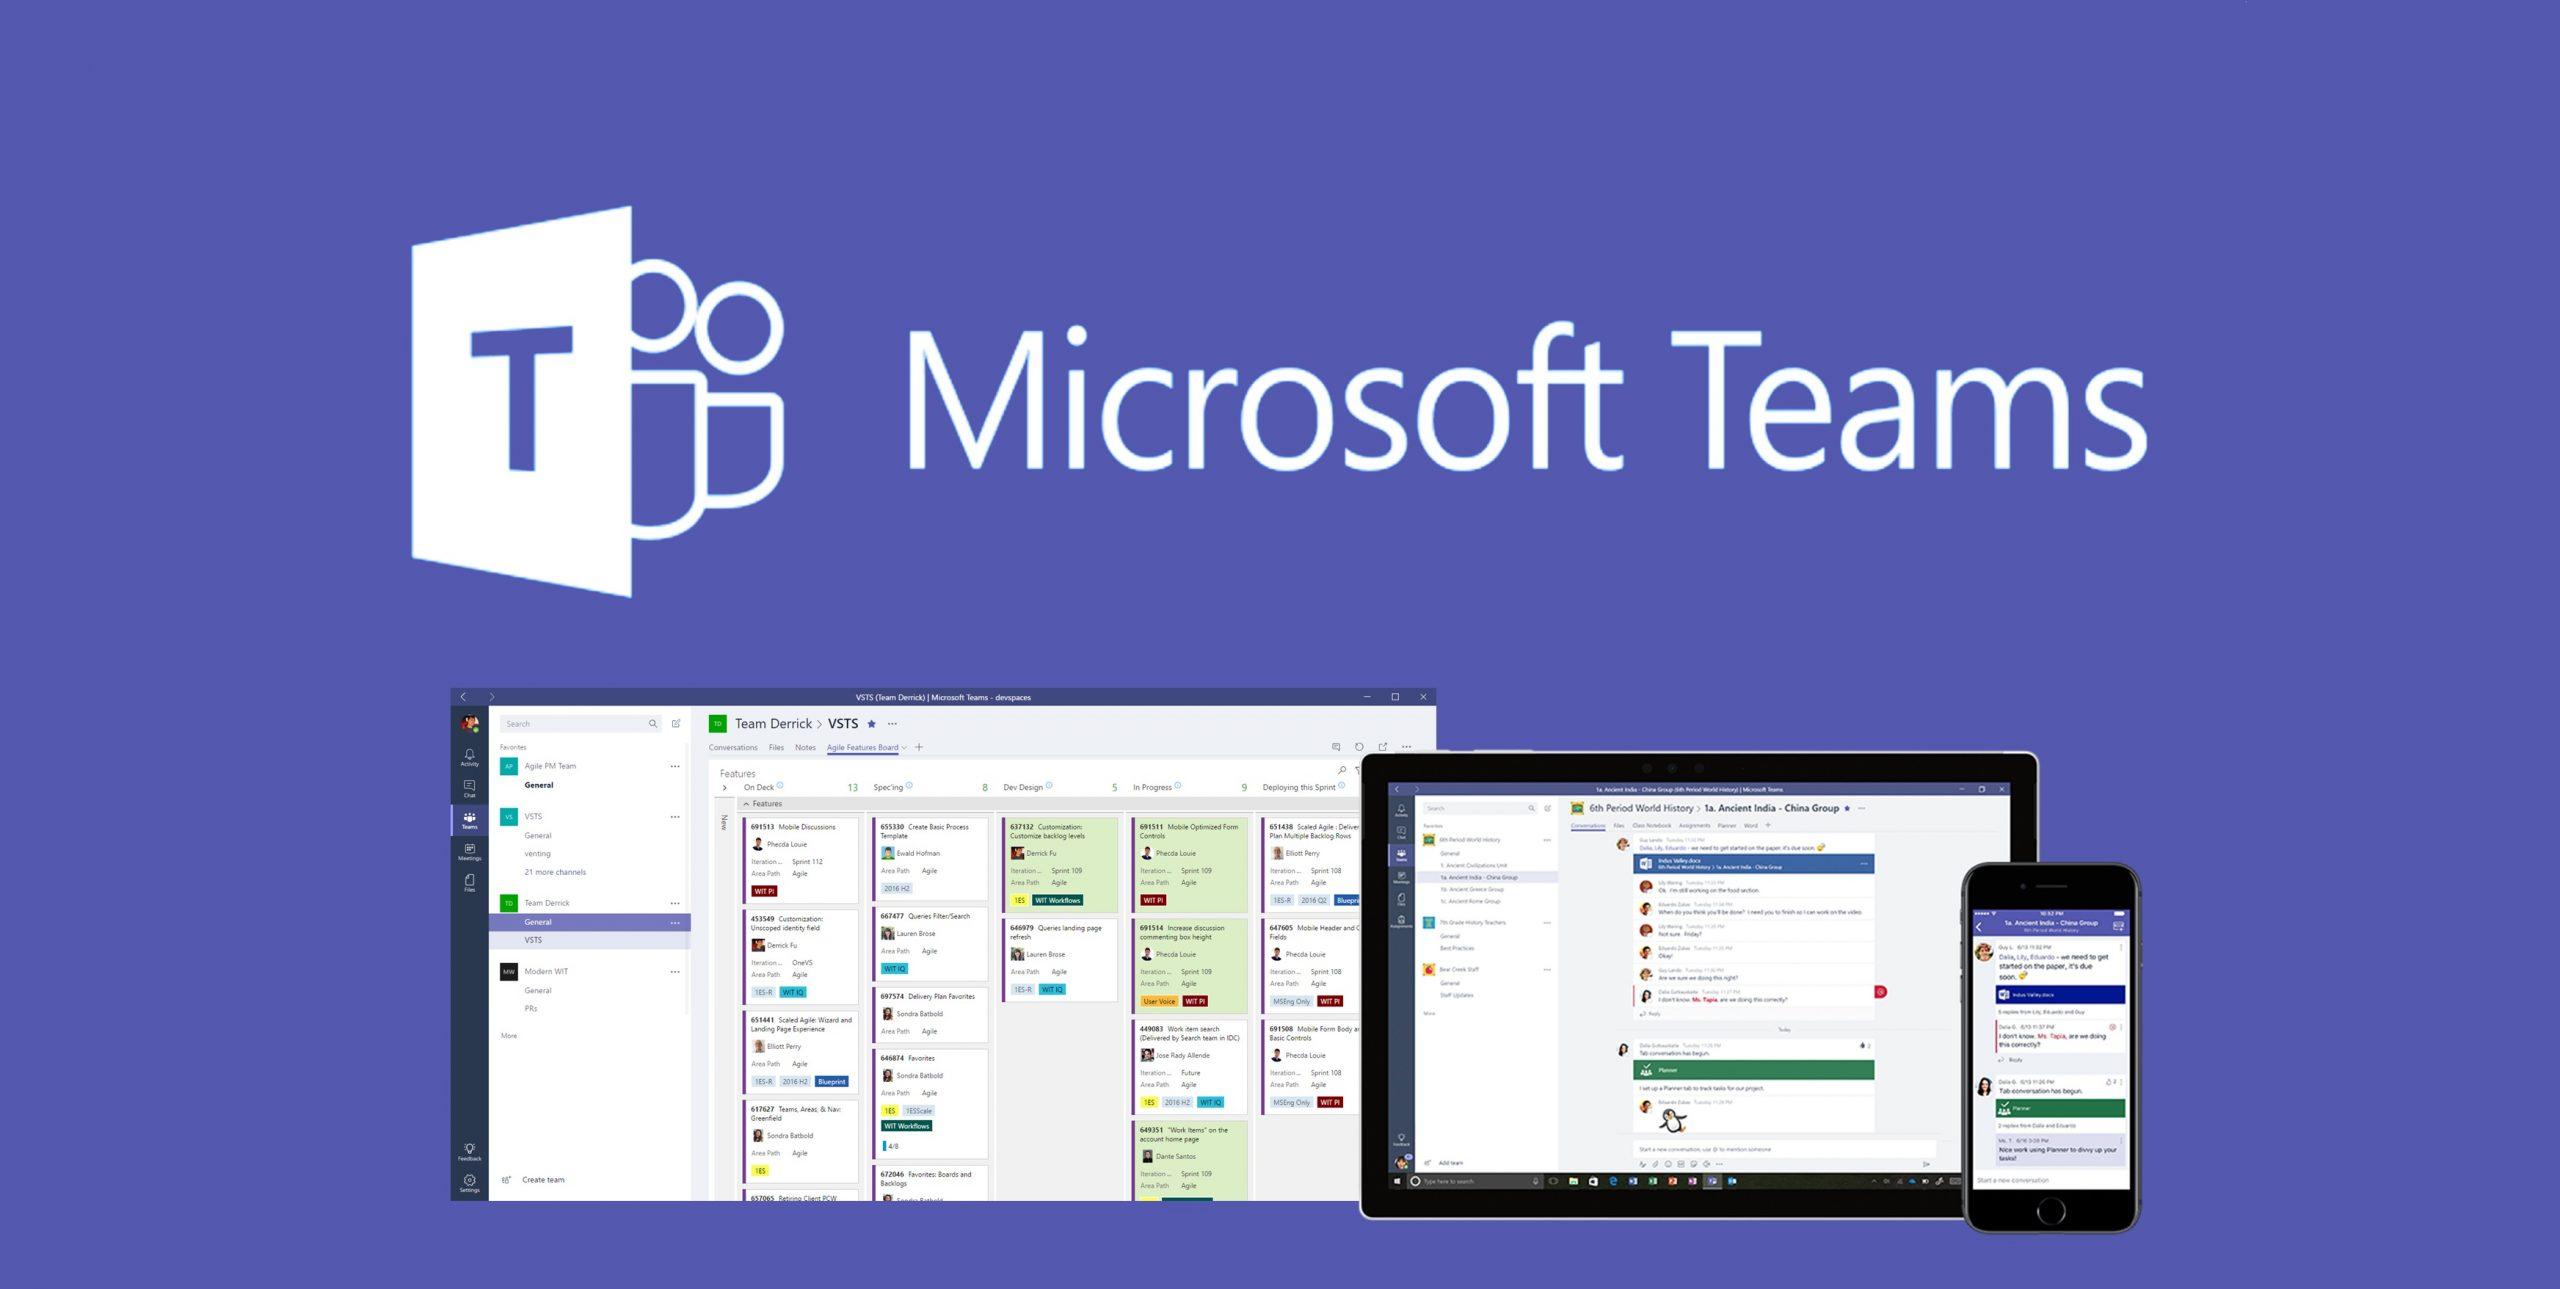 Custom Backgrounds for Microsoft Teams